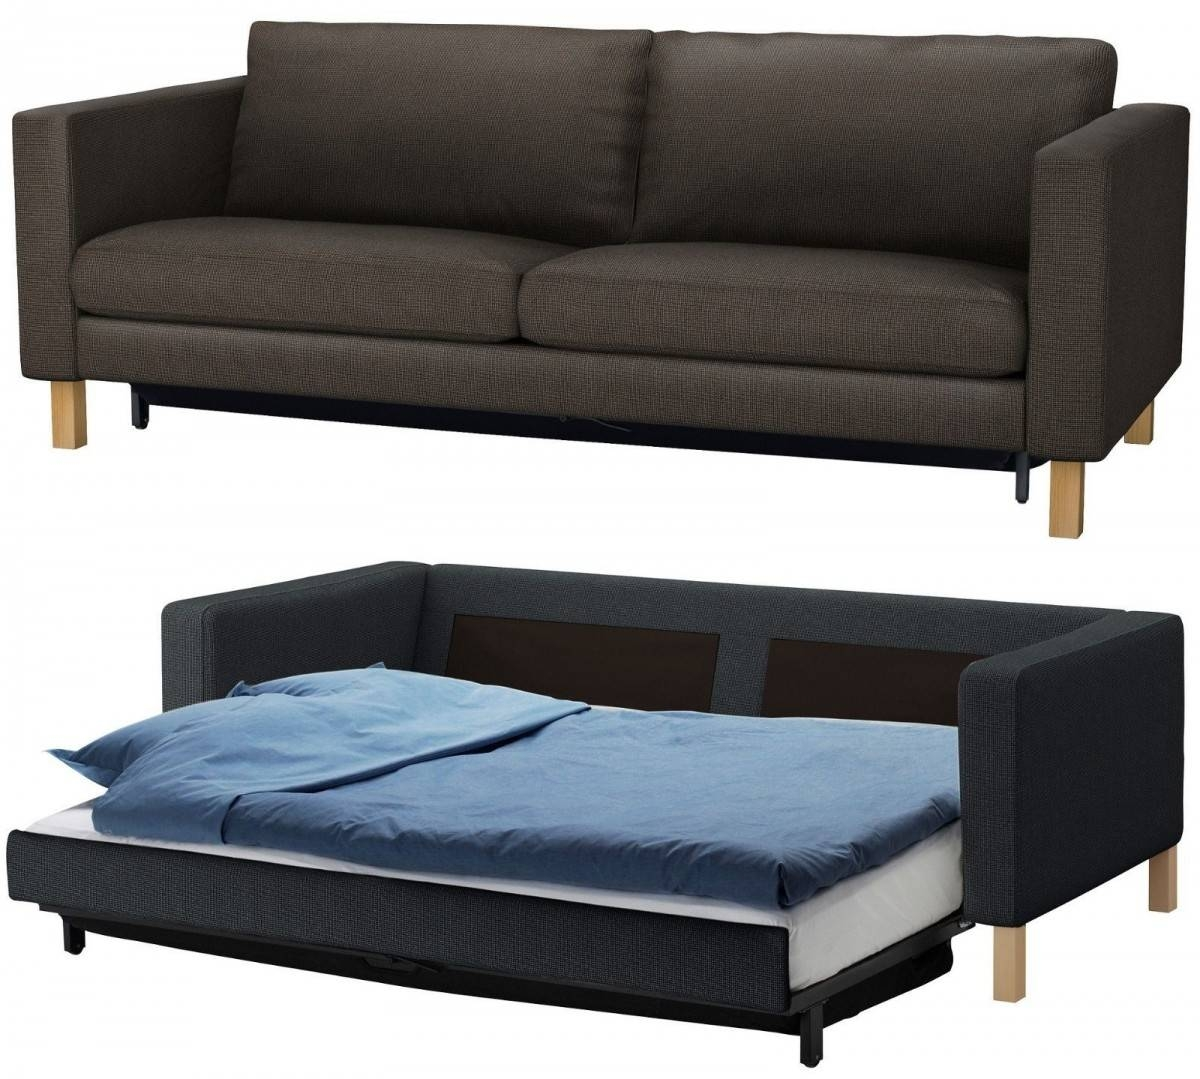 15 Best Ideas of Queen Size Convertible Sofa Beds